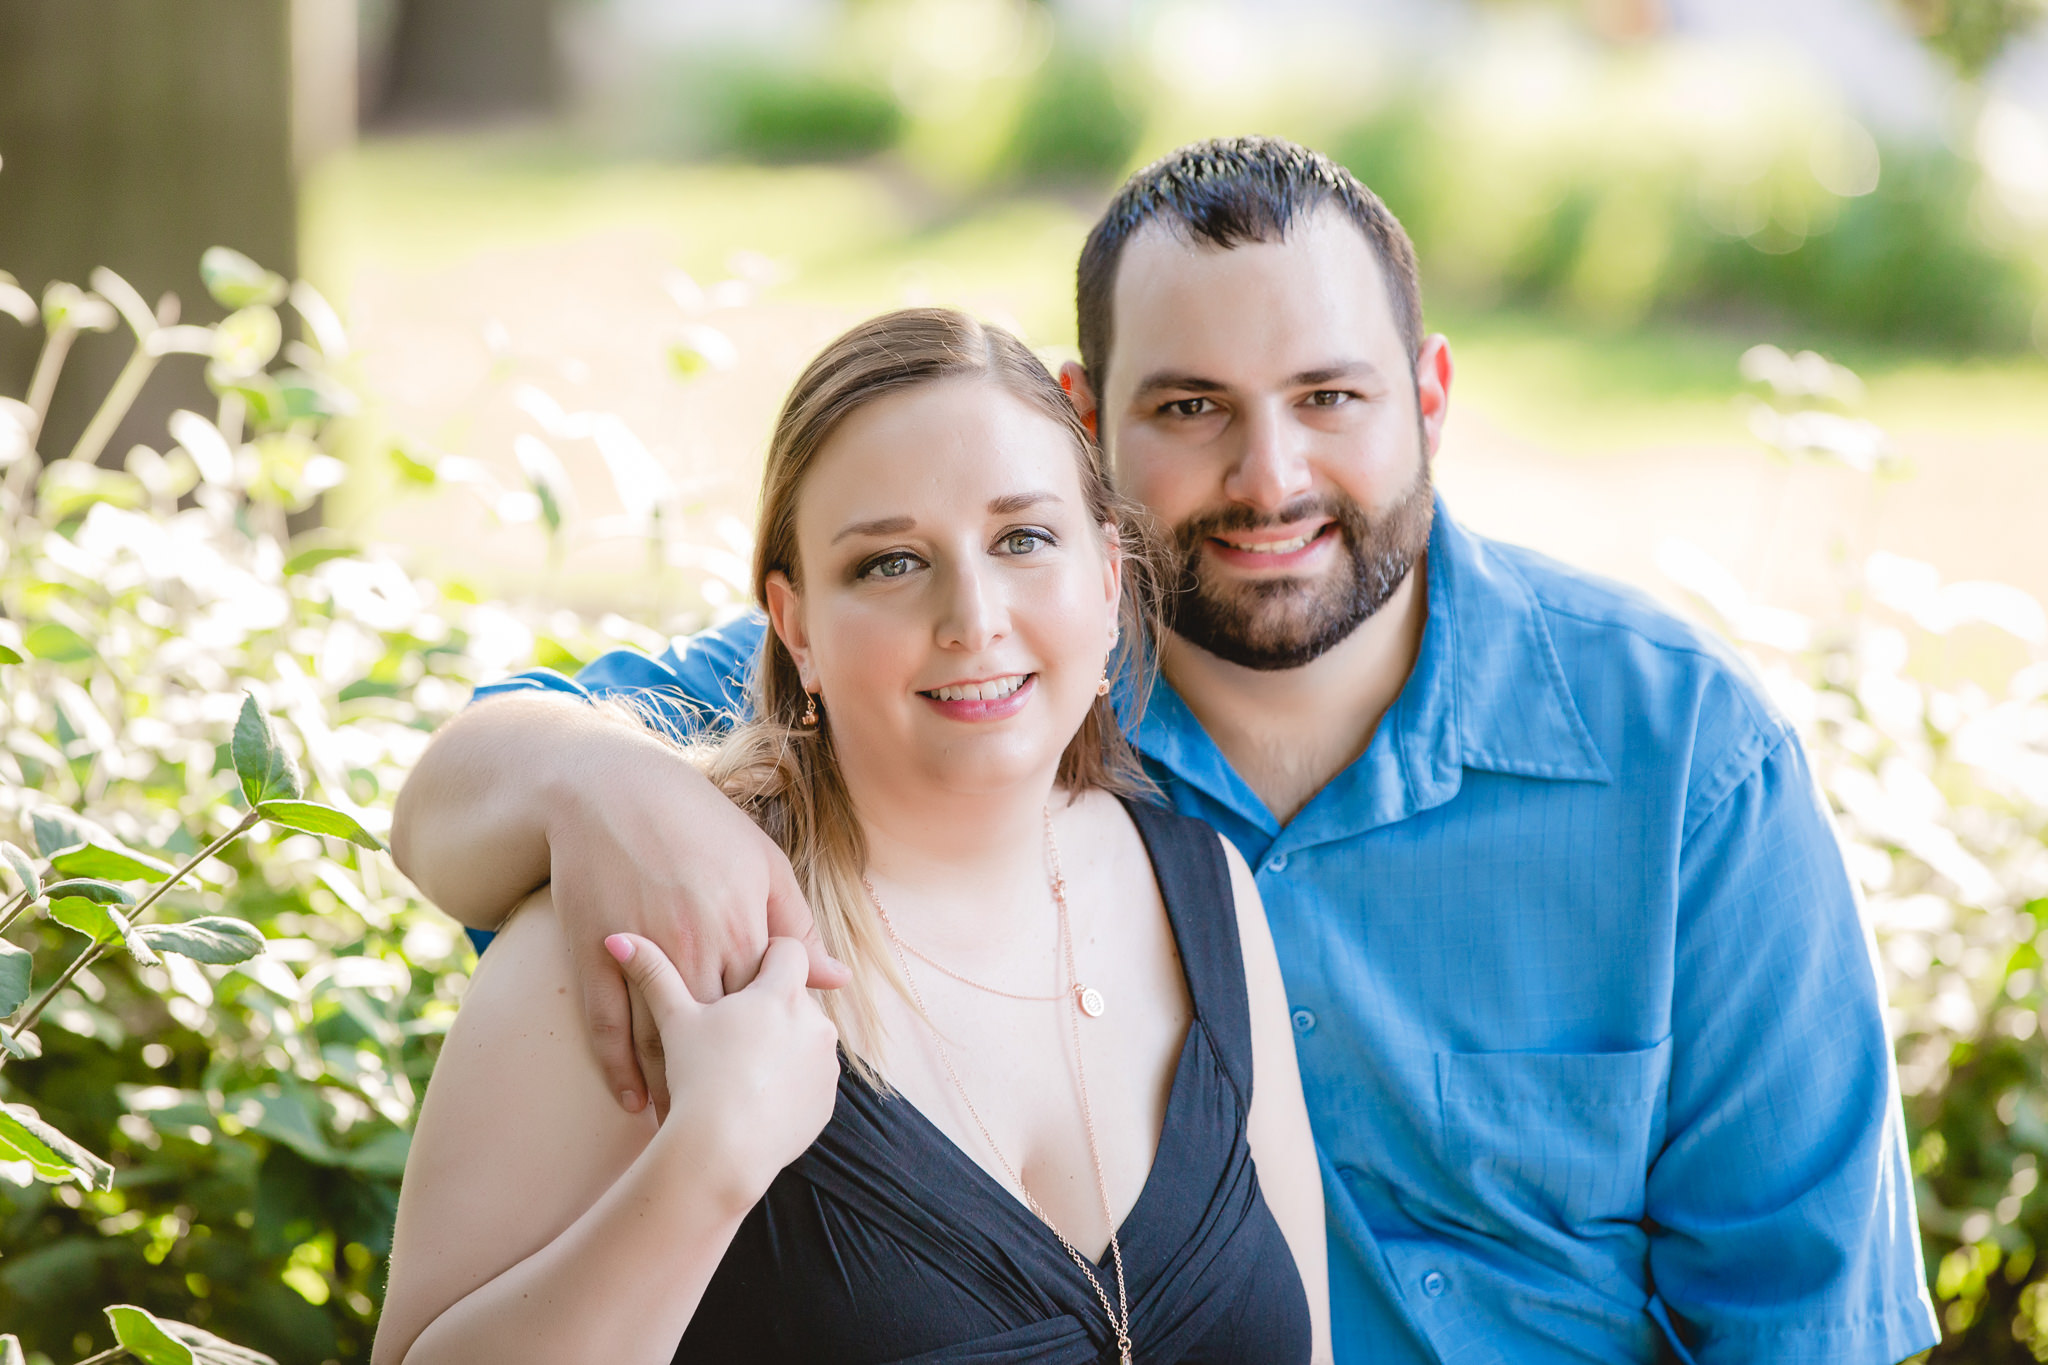 Engagement session on Duquesne University's campus in Pittsburgh